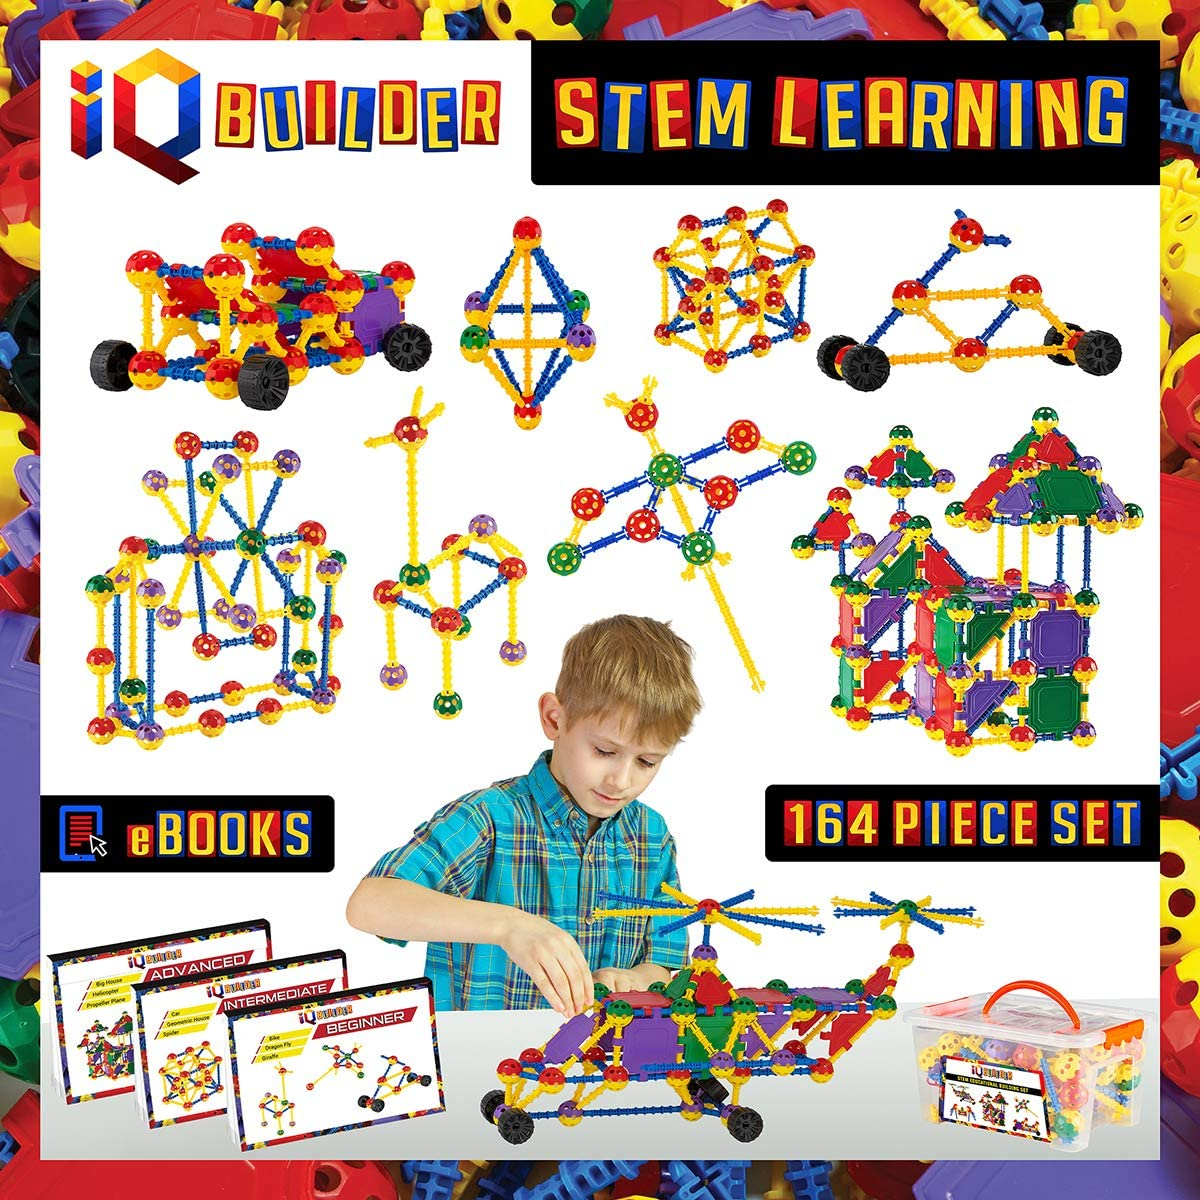 iq builder stem learning educational toys for autism toddlers